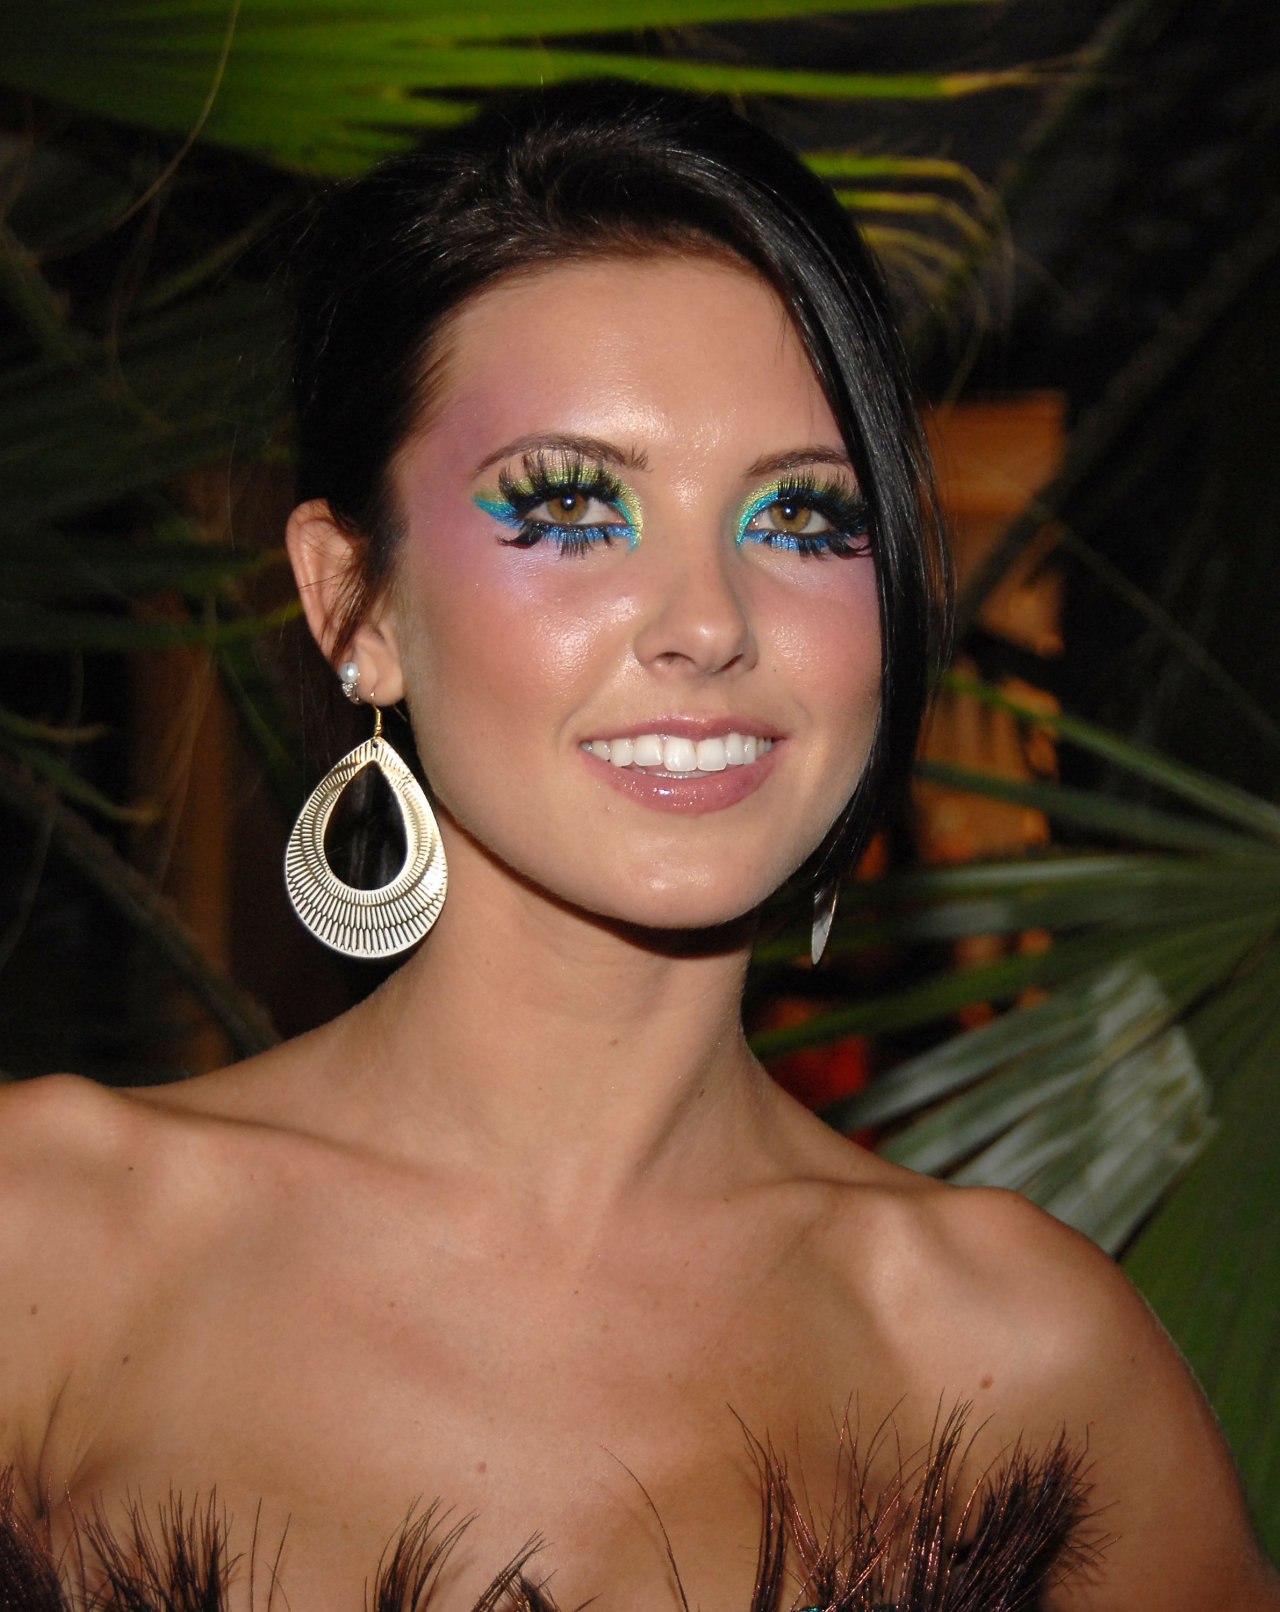 Audrina Patridge - Photos